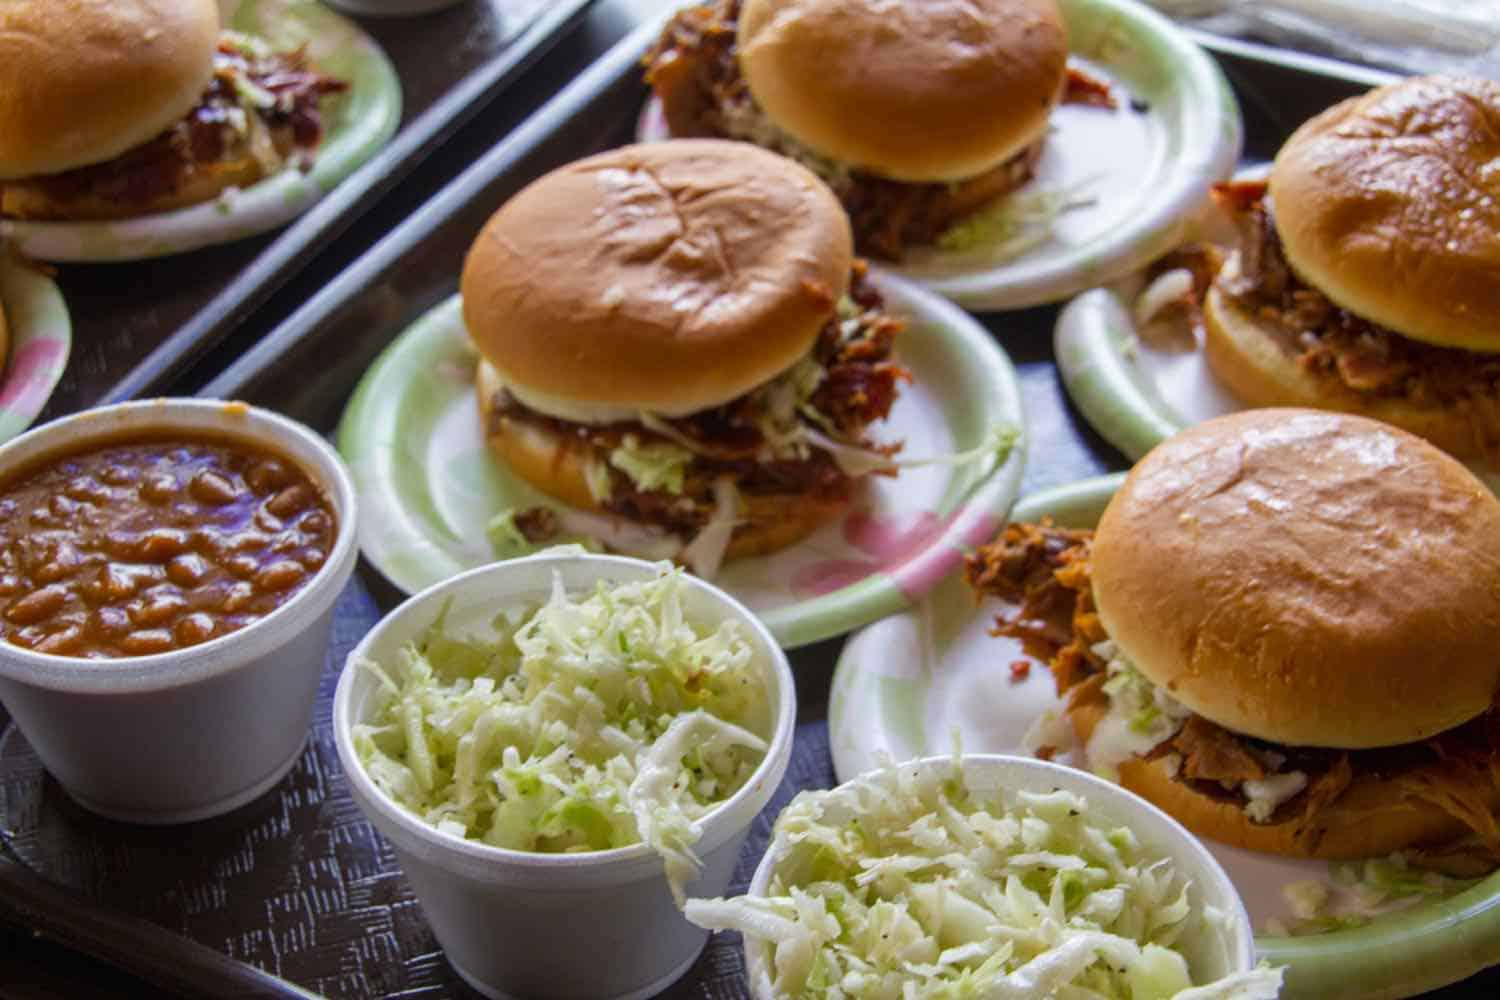 Barbecue sandwiches with cups of coleslaw and baked beans